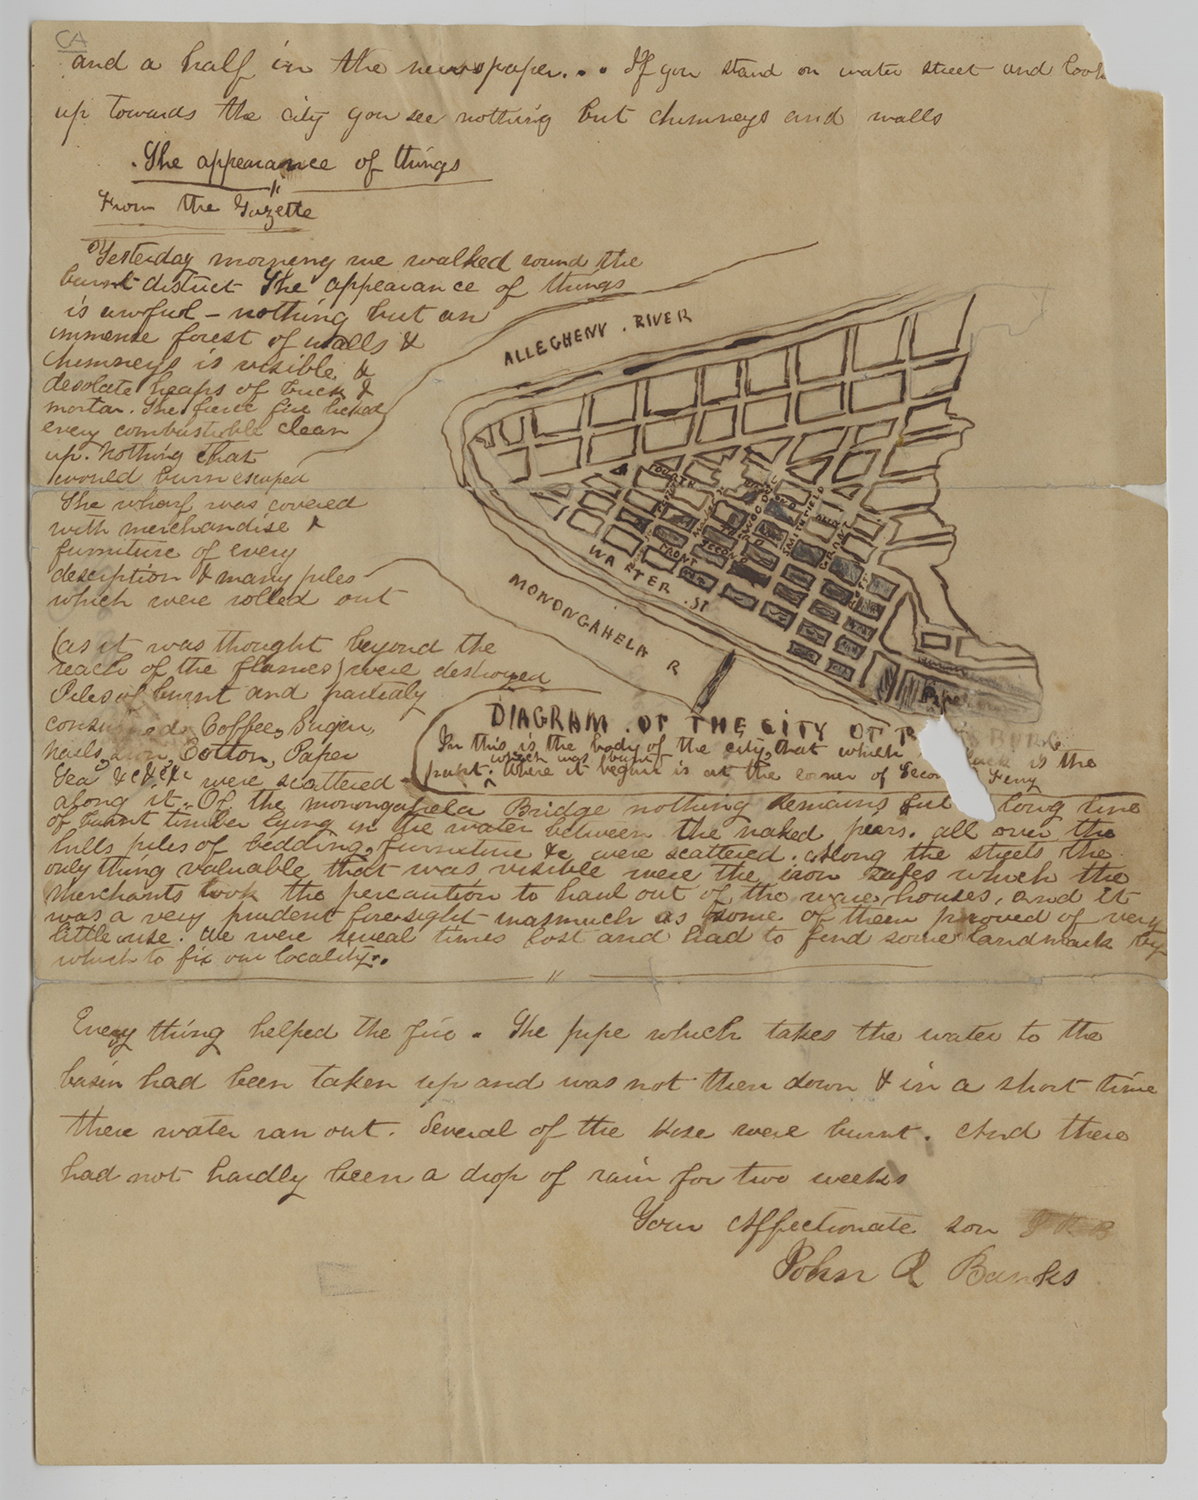 John Banks' Great Fire letter, 1845.